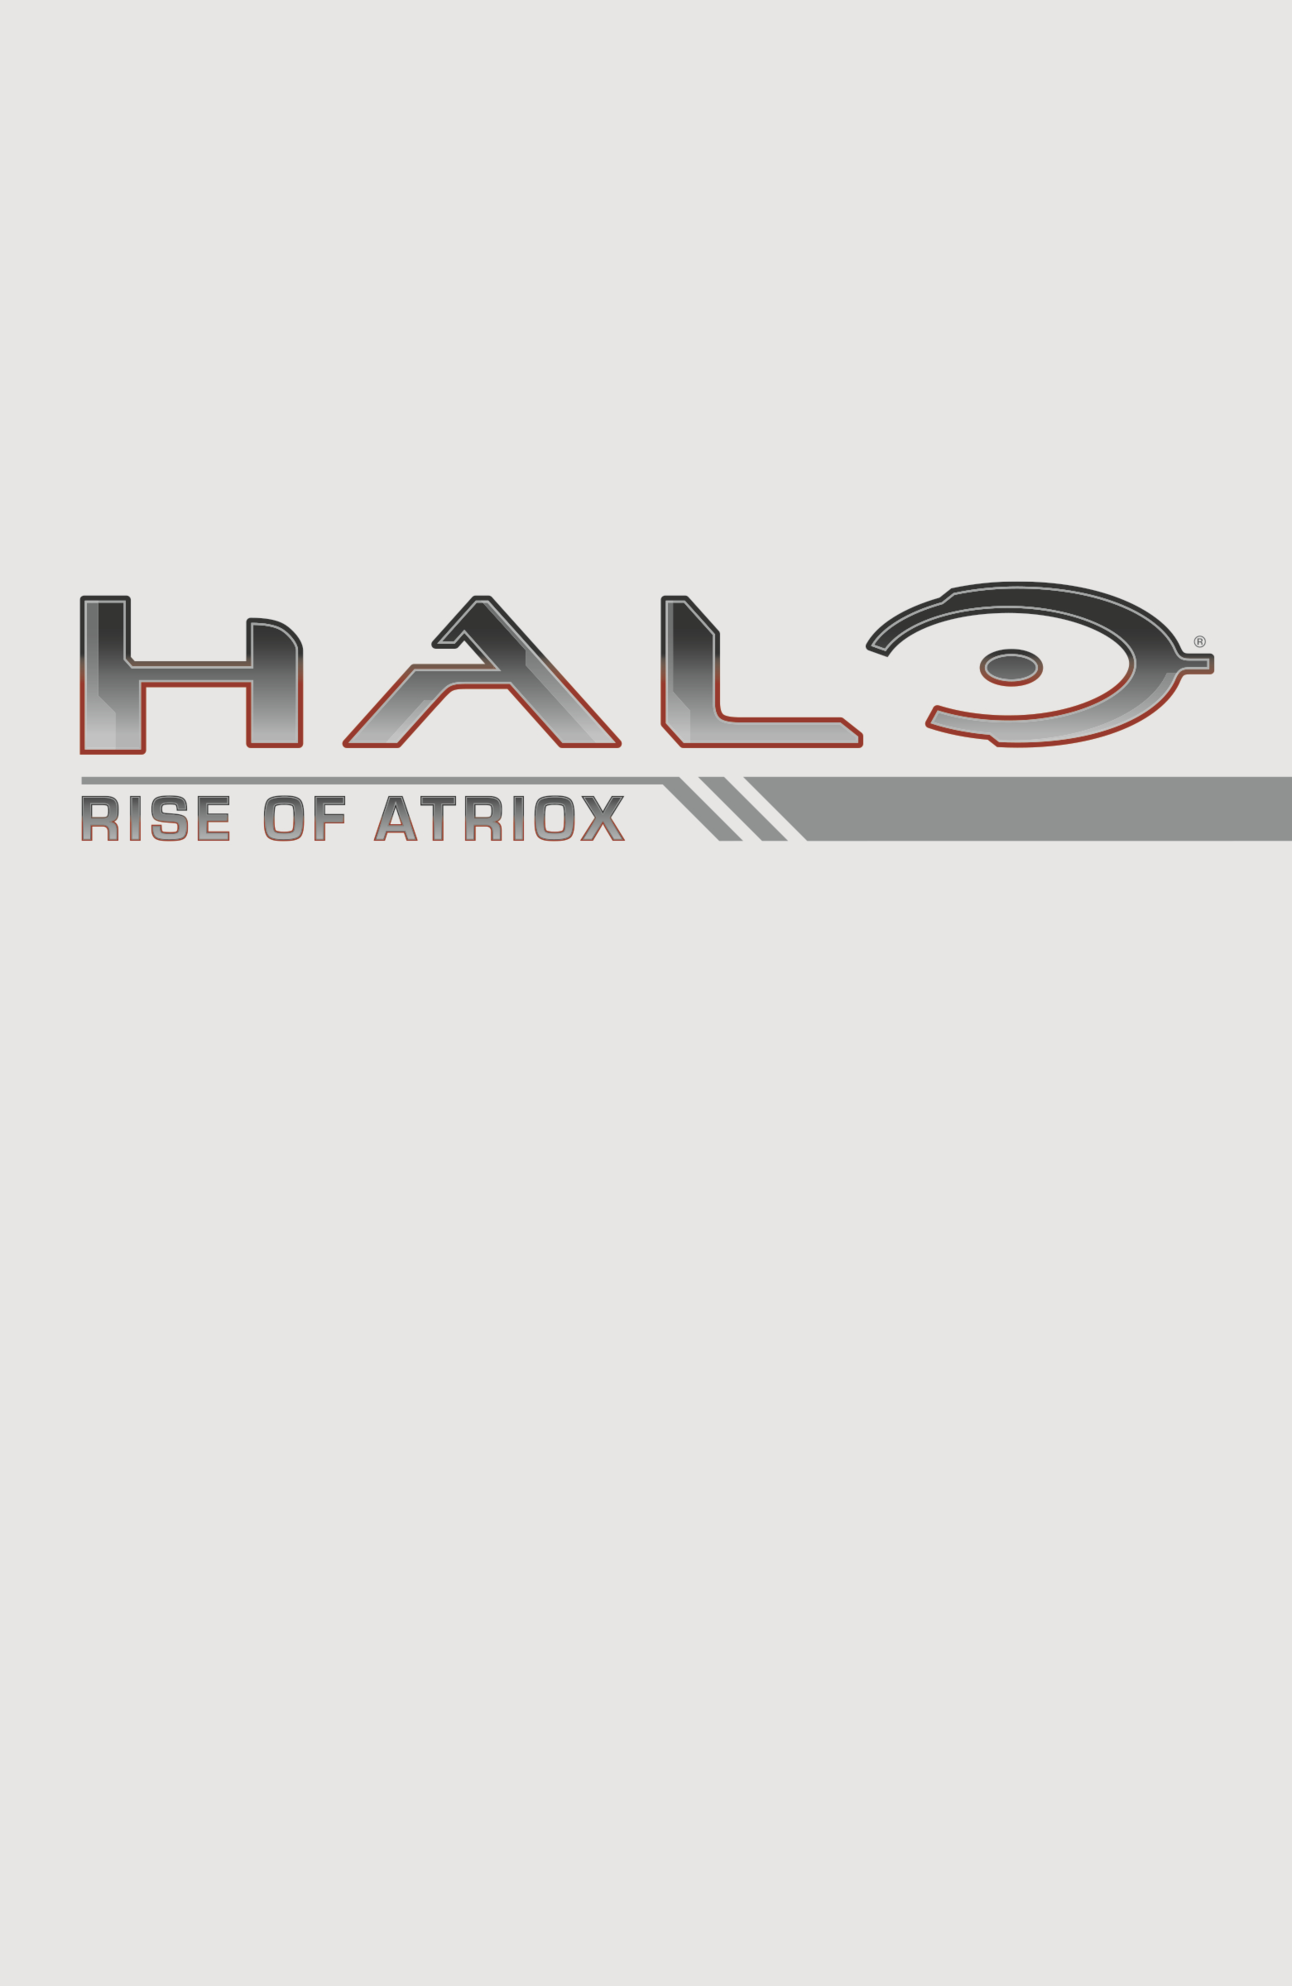 halo rise 4.png